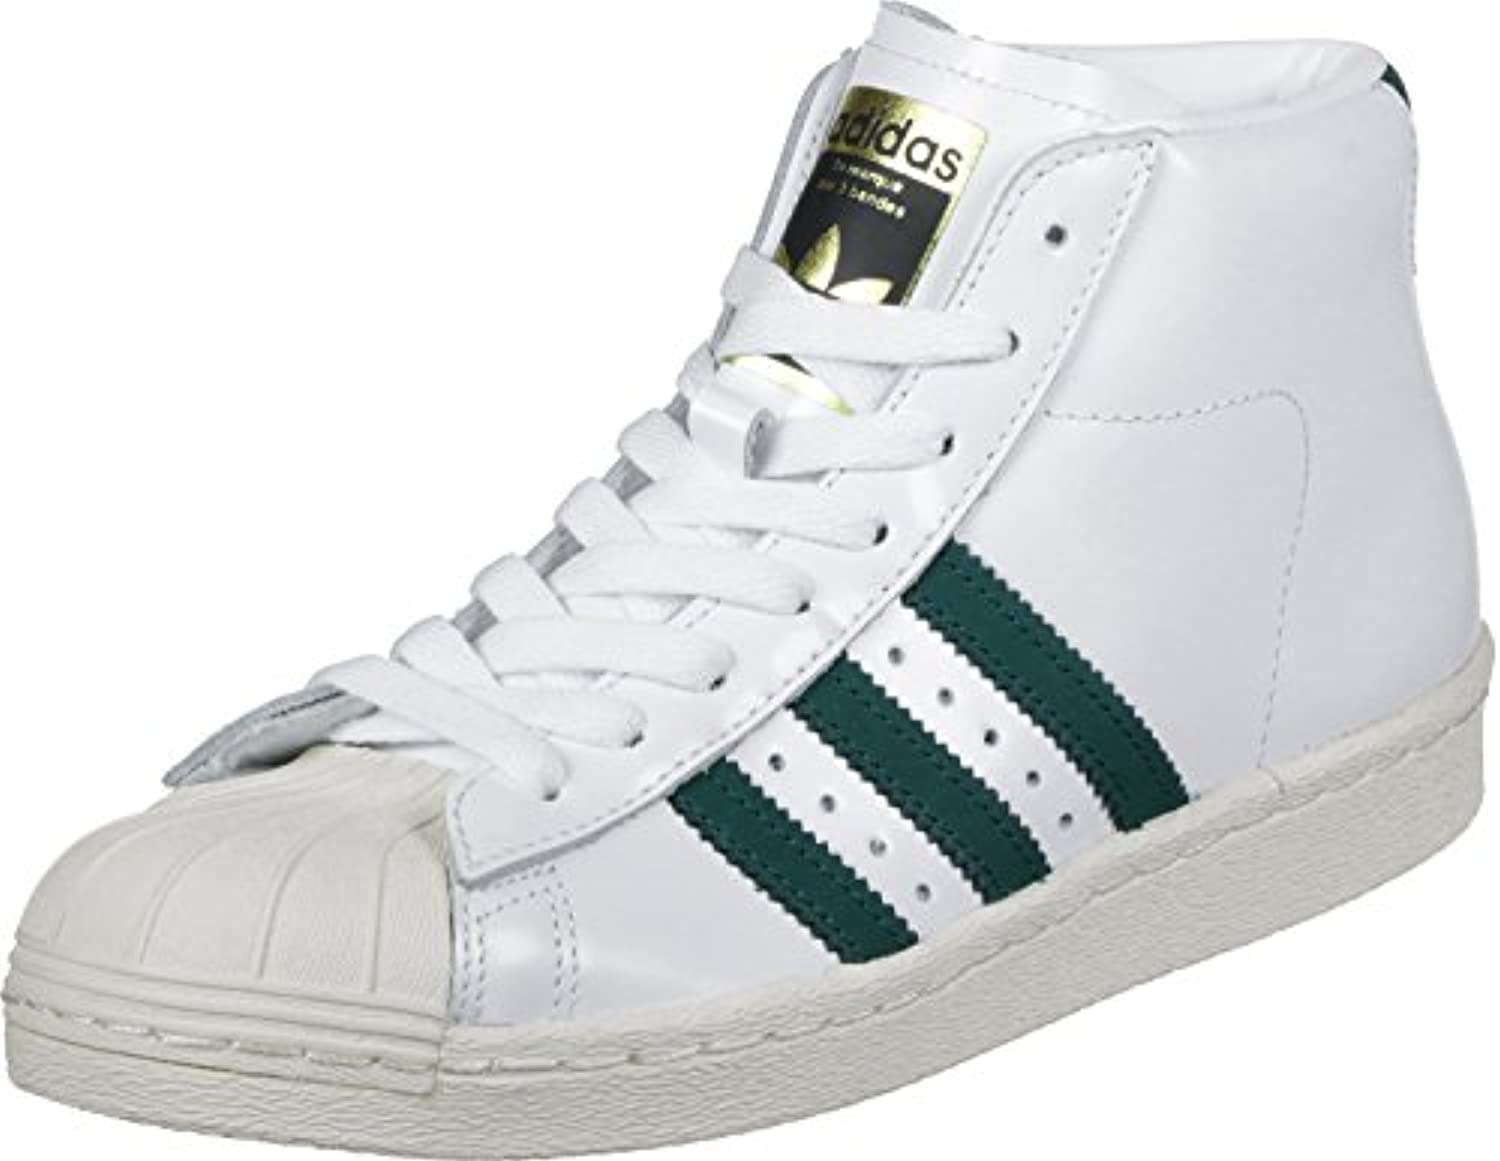 adidas Pro Model 80s Schuhe white/green/black -